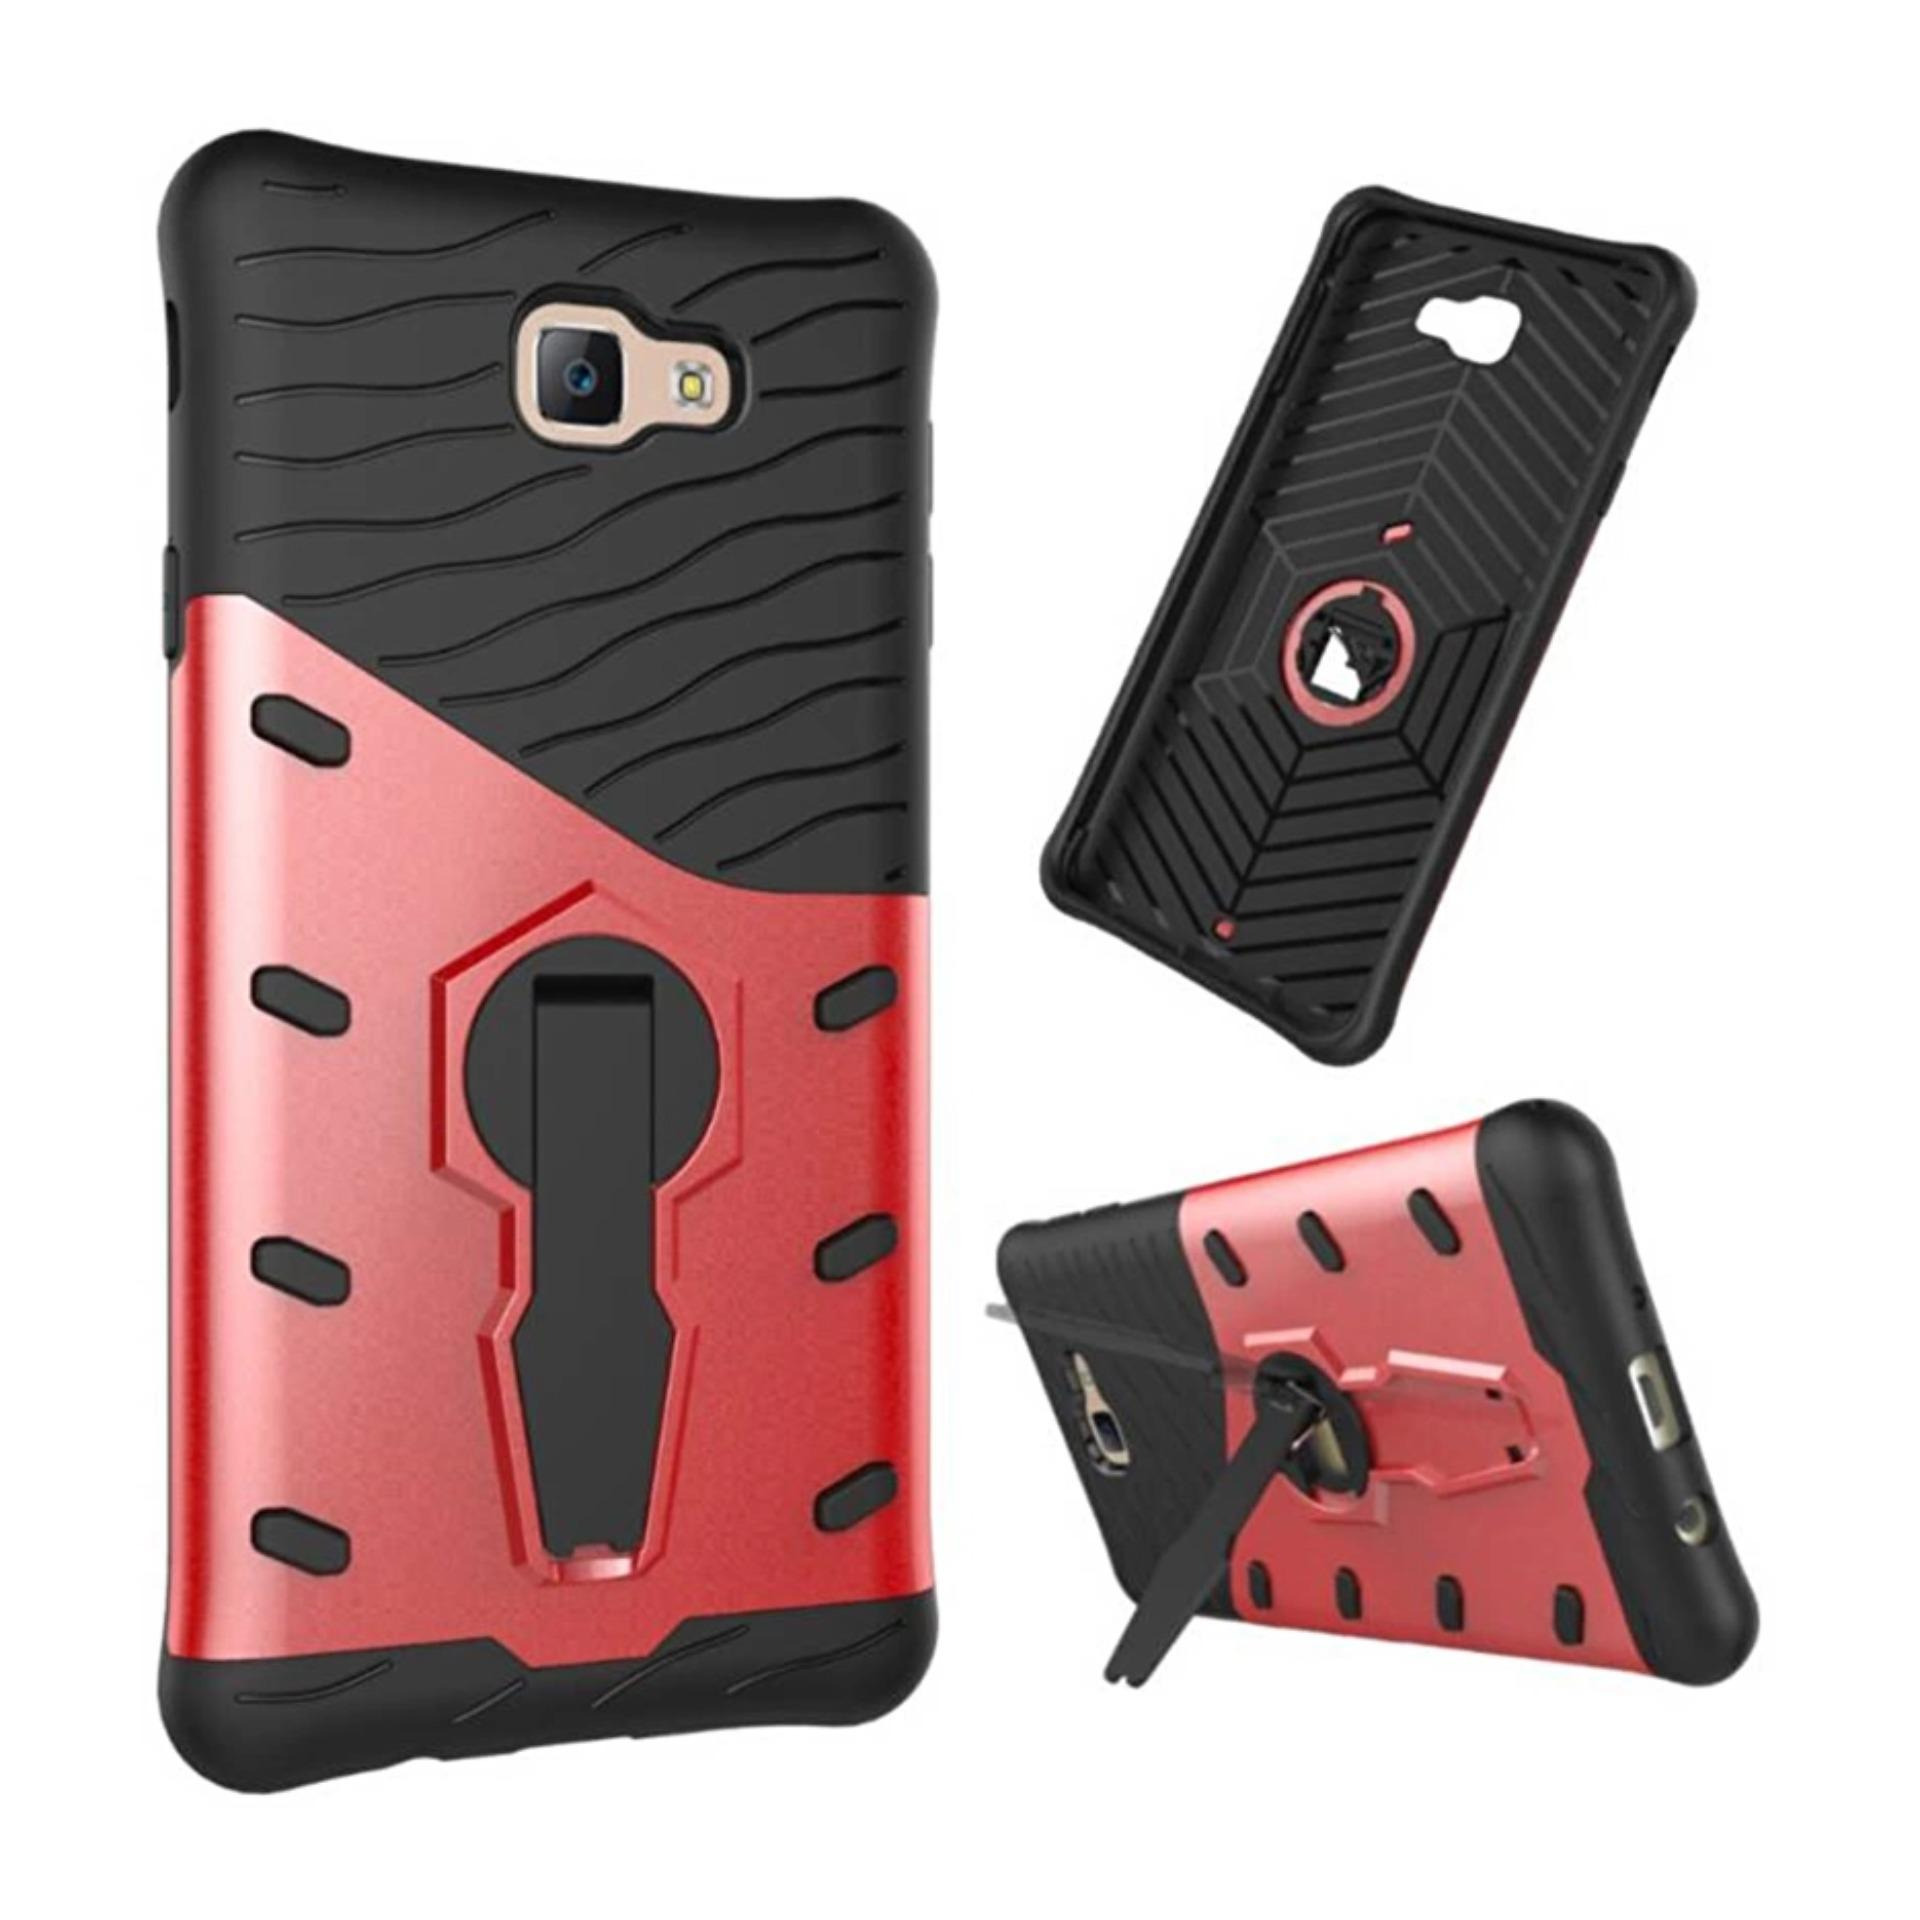 Casing for Samsung Galaxy J7 Prime / On7 2016 Case [360 Kickstand Holder] PC